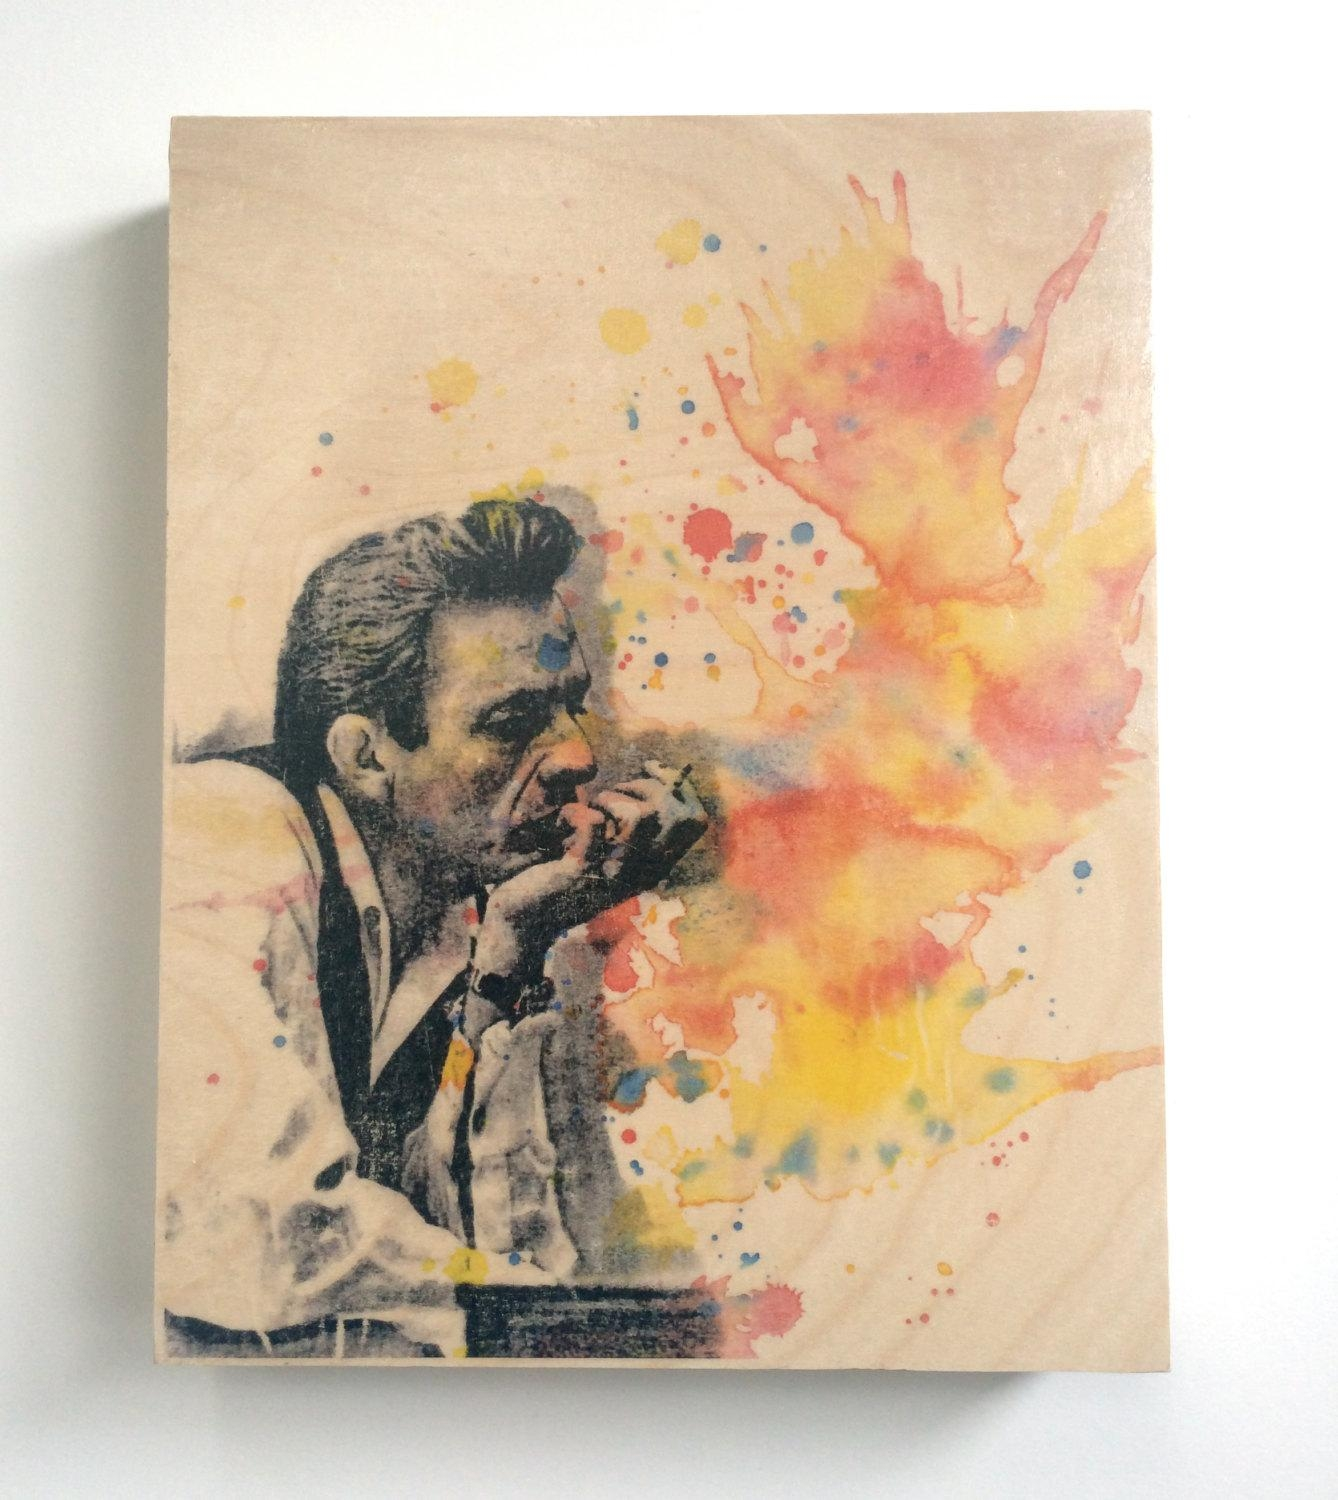 Wood Wall Art Panel Johnny Cash Art Print From Original Regarding Wooden Wall Art Panels (Image 17 of 20)